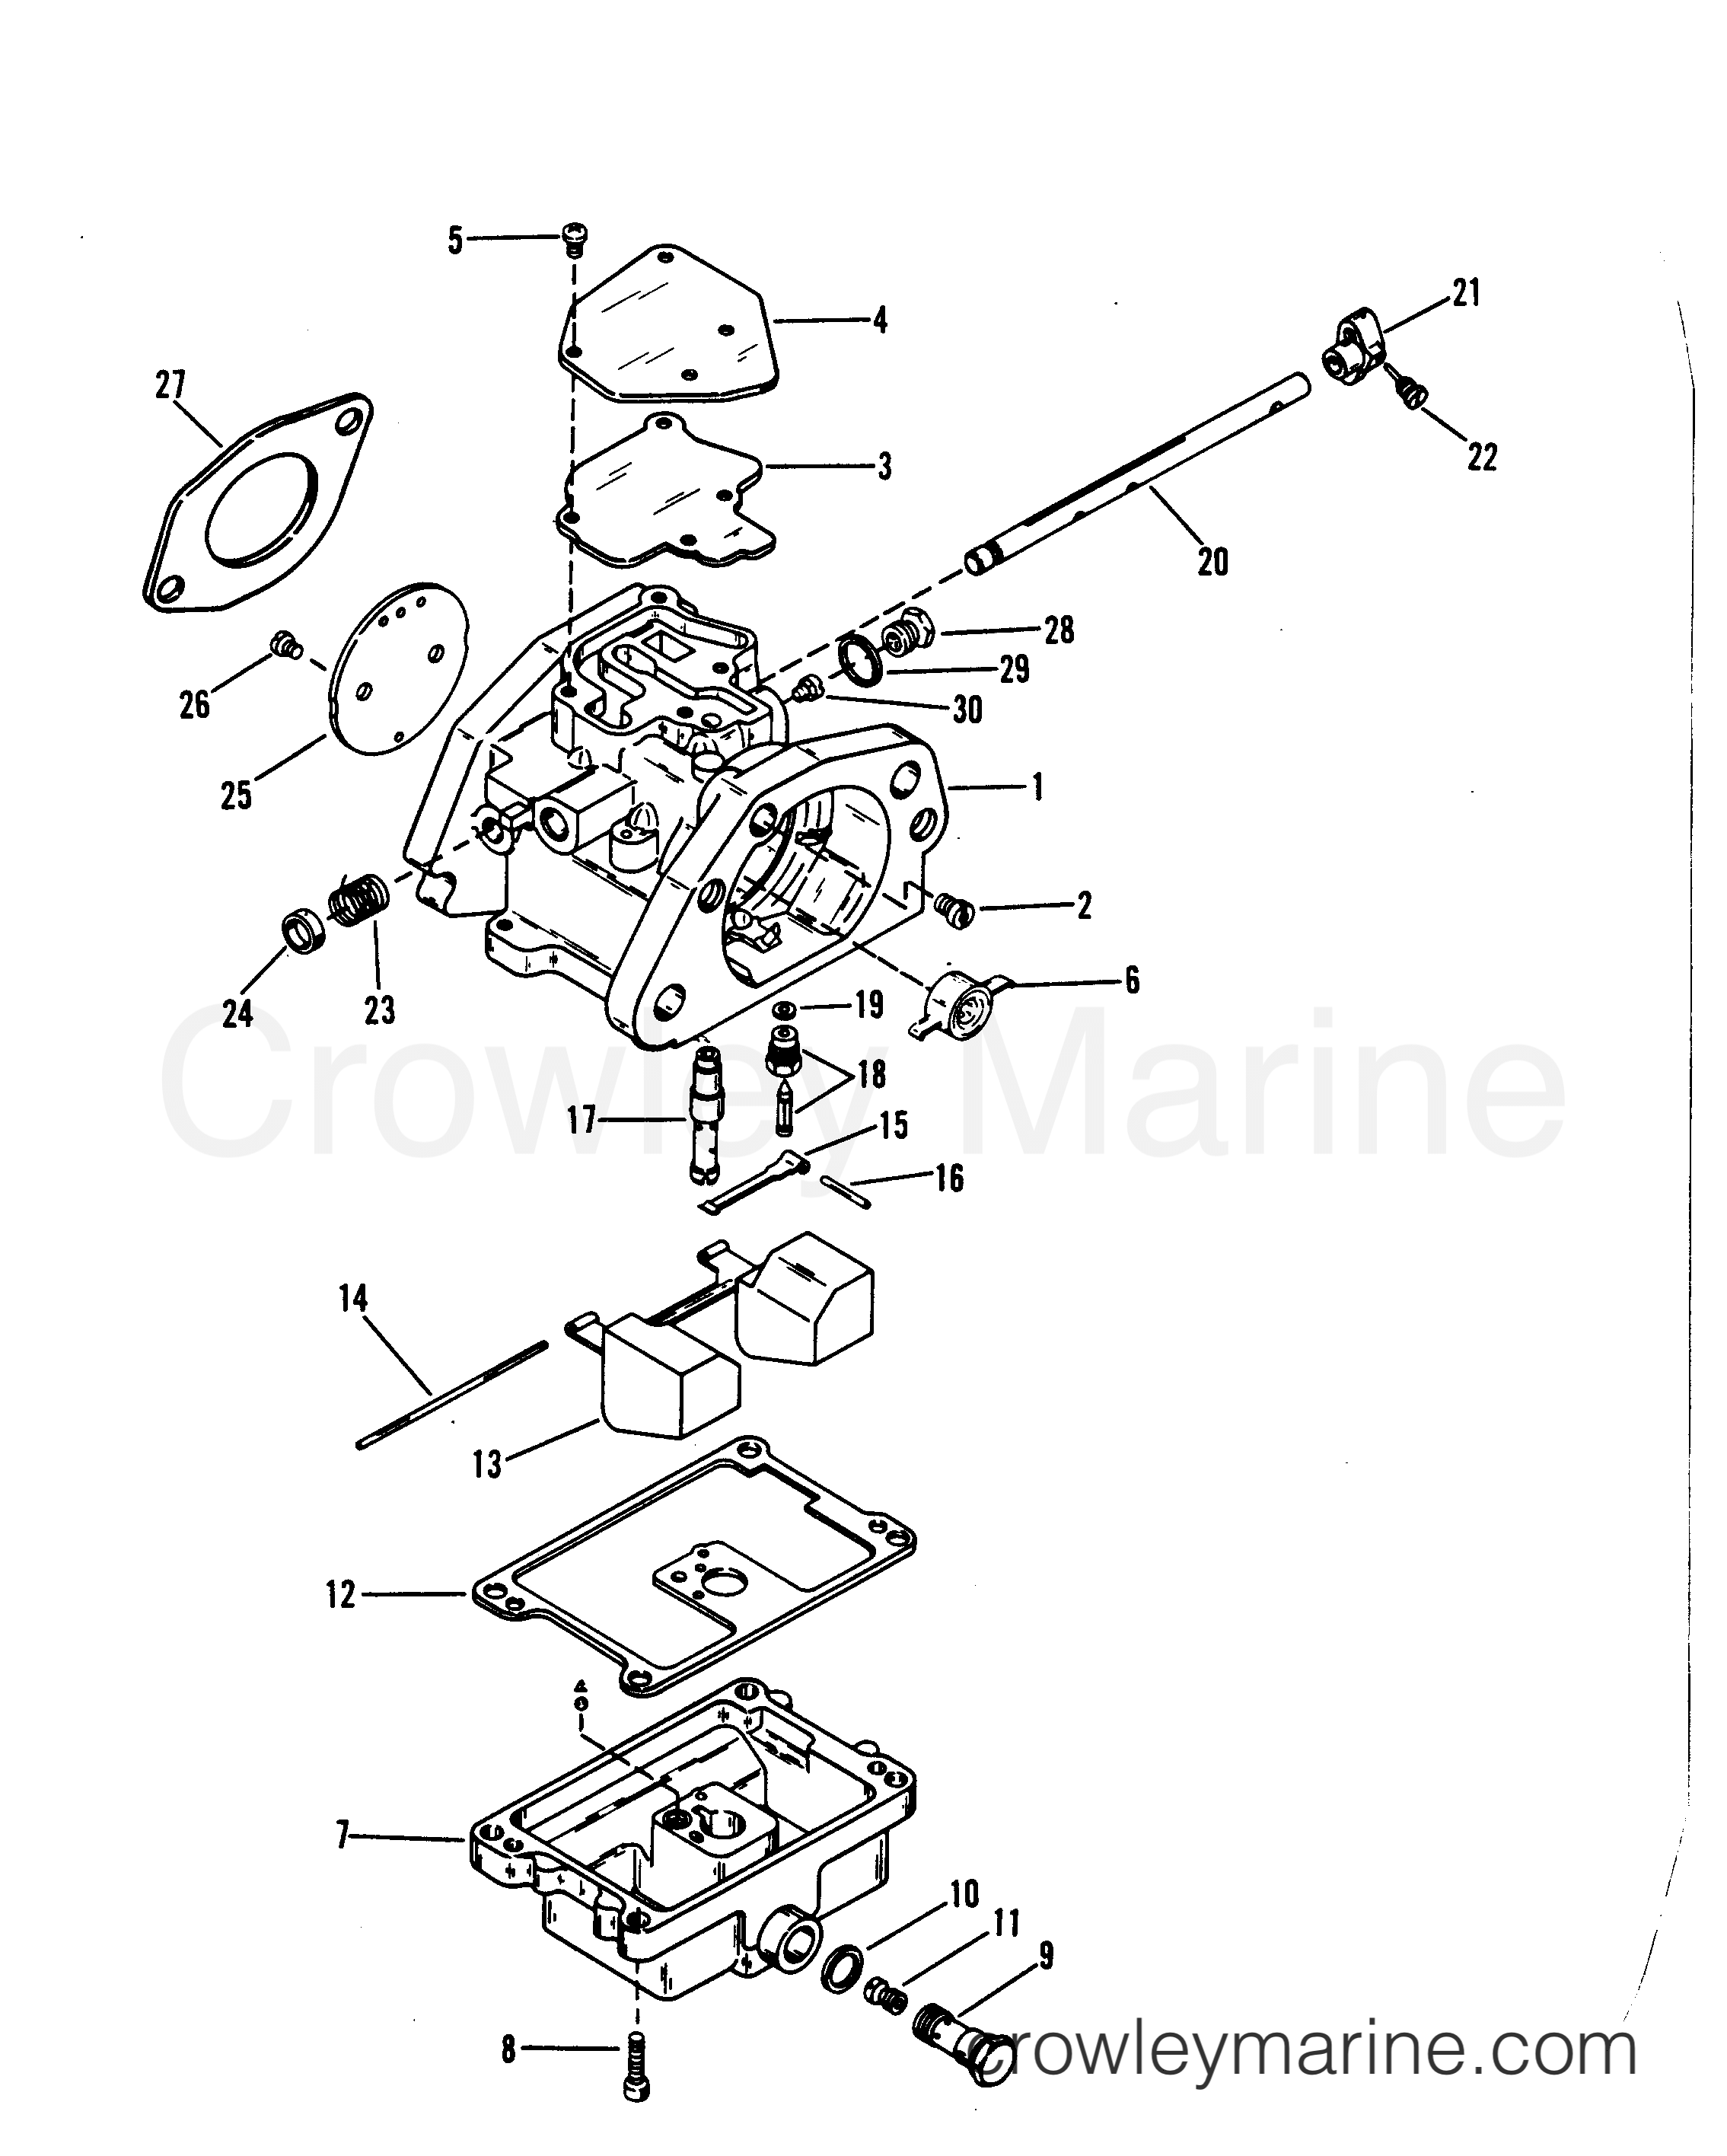 1989 Mariner Outboard 250 [XL] - 7250422PD - CARBURETOR ASSEMBLY section